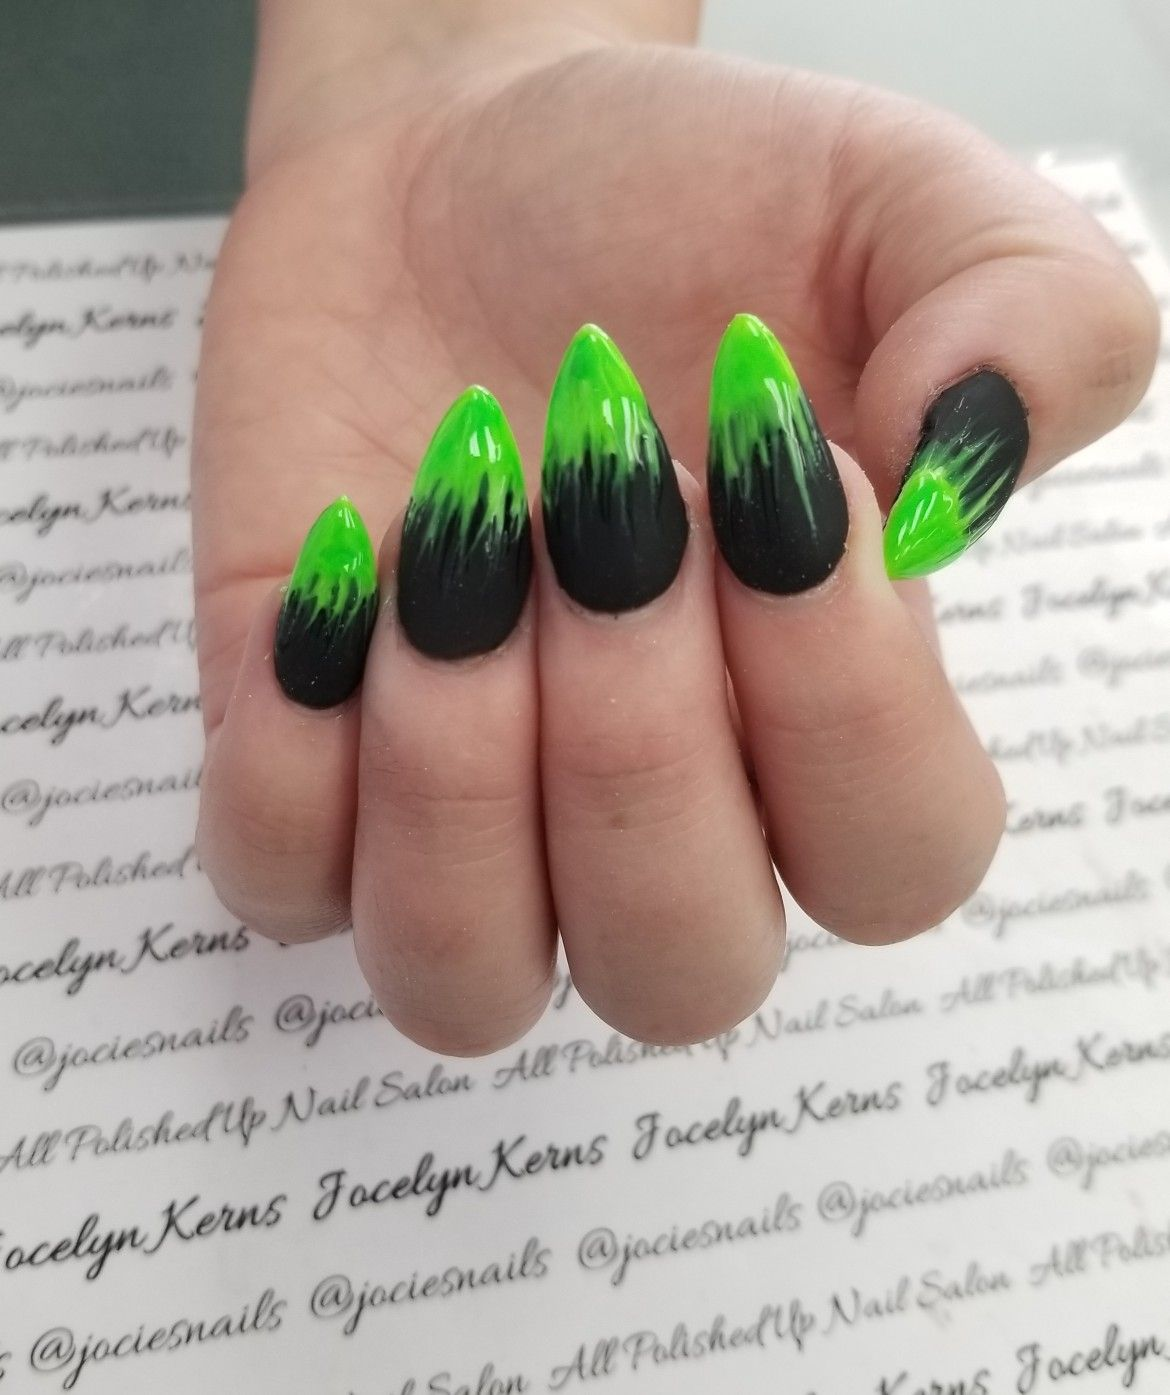 Poison ivy nails poison dipped nails Halloween nails black ...